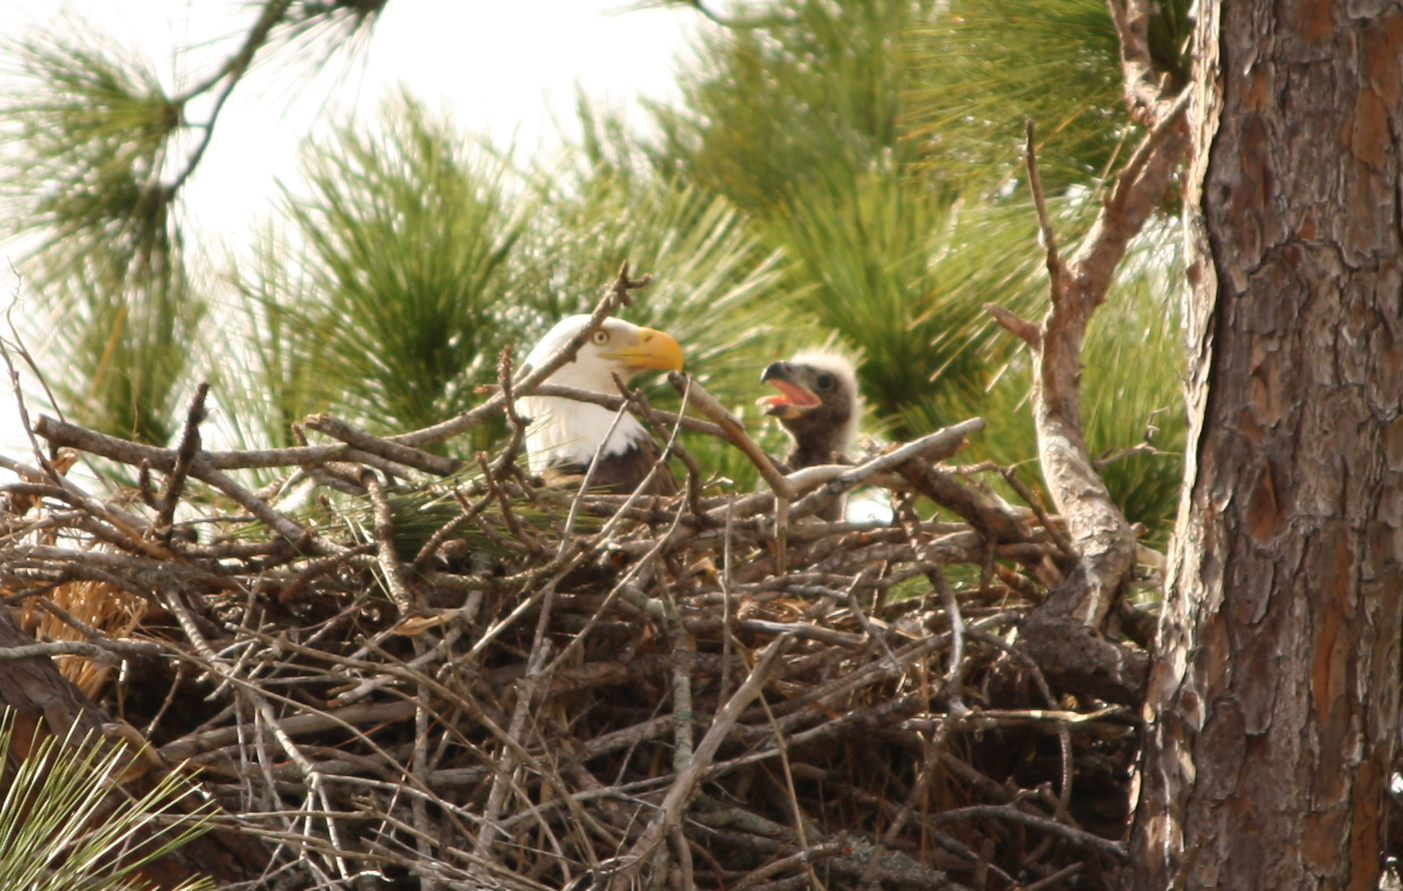 Baby_Bald_Eagle_in_nest_(cropped)